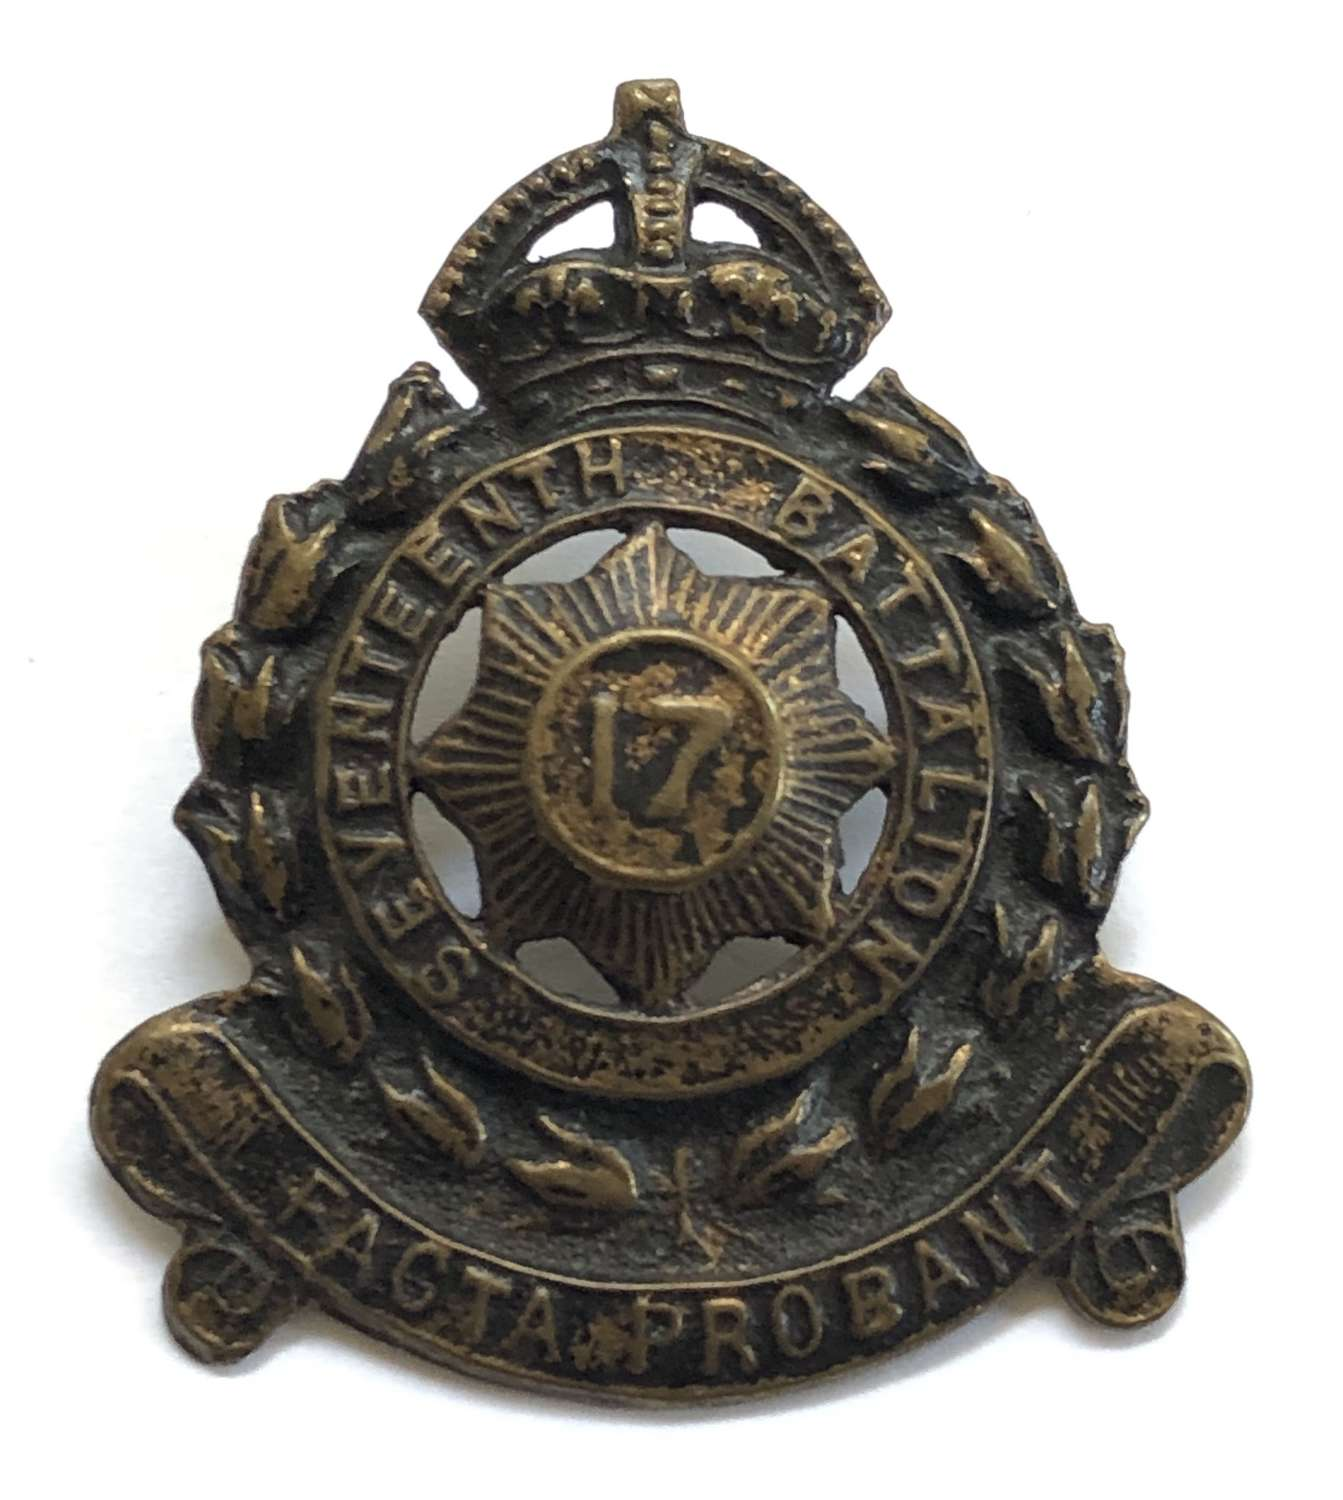 Australian 17th Infantry Bn (North Syney Regt) slouch hat badge